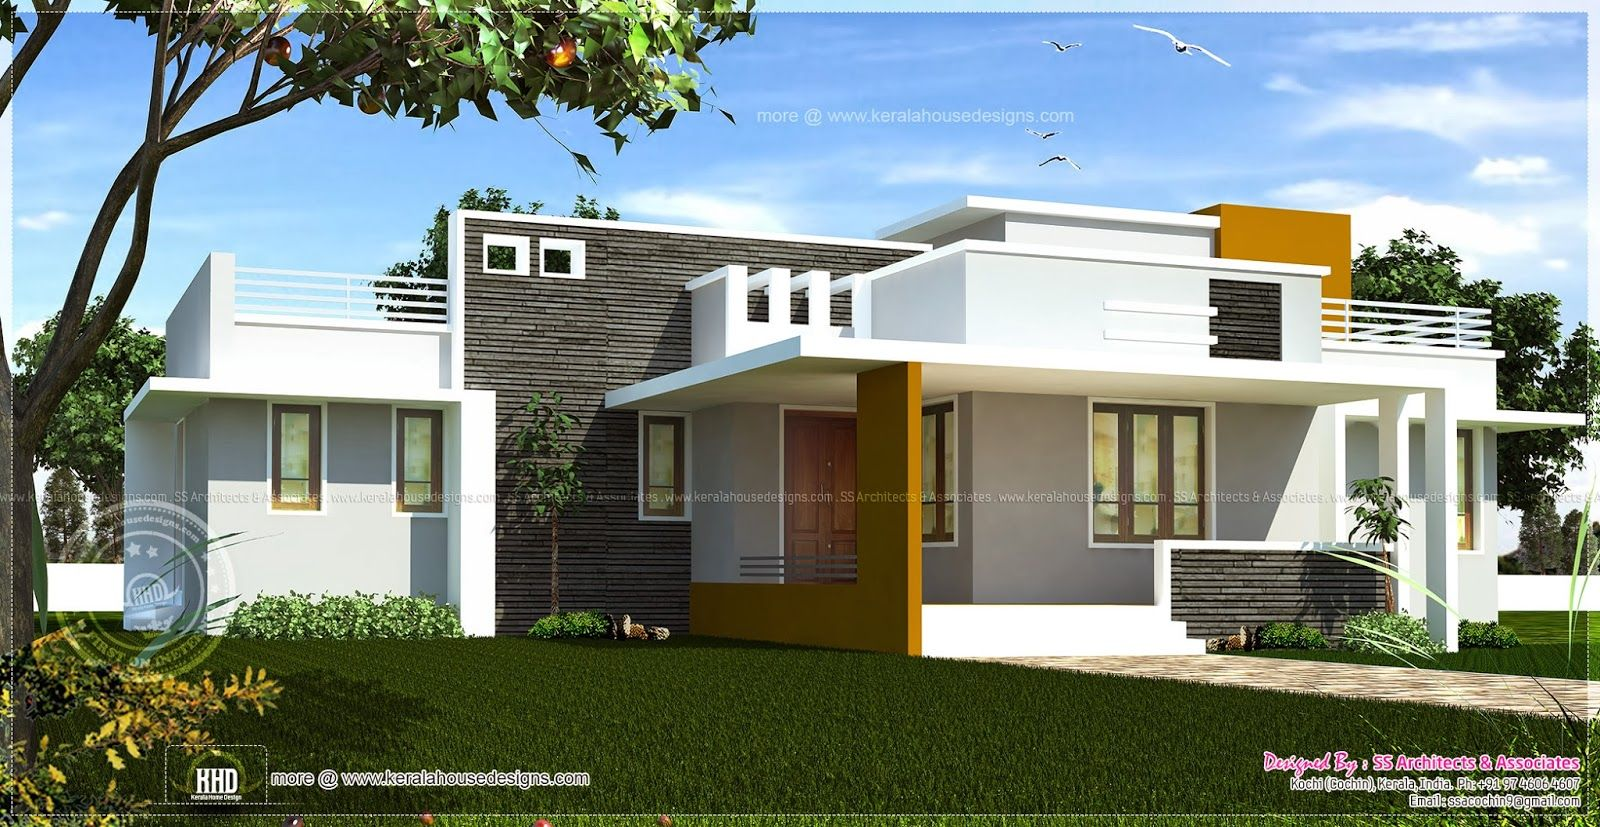 Excellent single home designs single floor contemporary for Kerala style single storey house plans